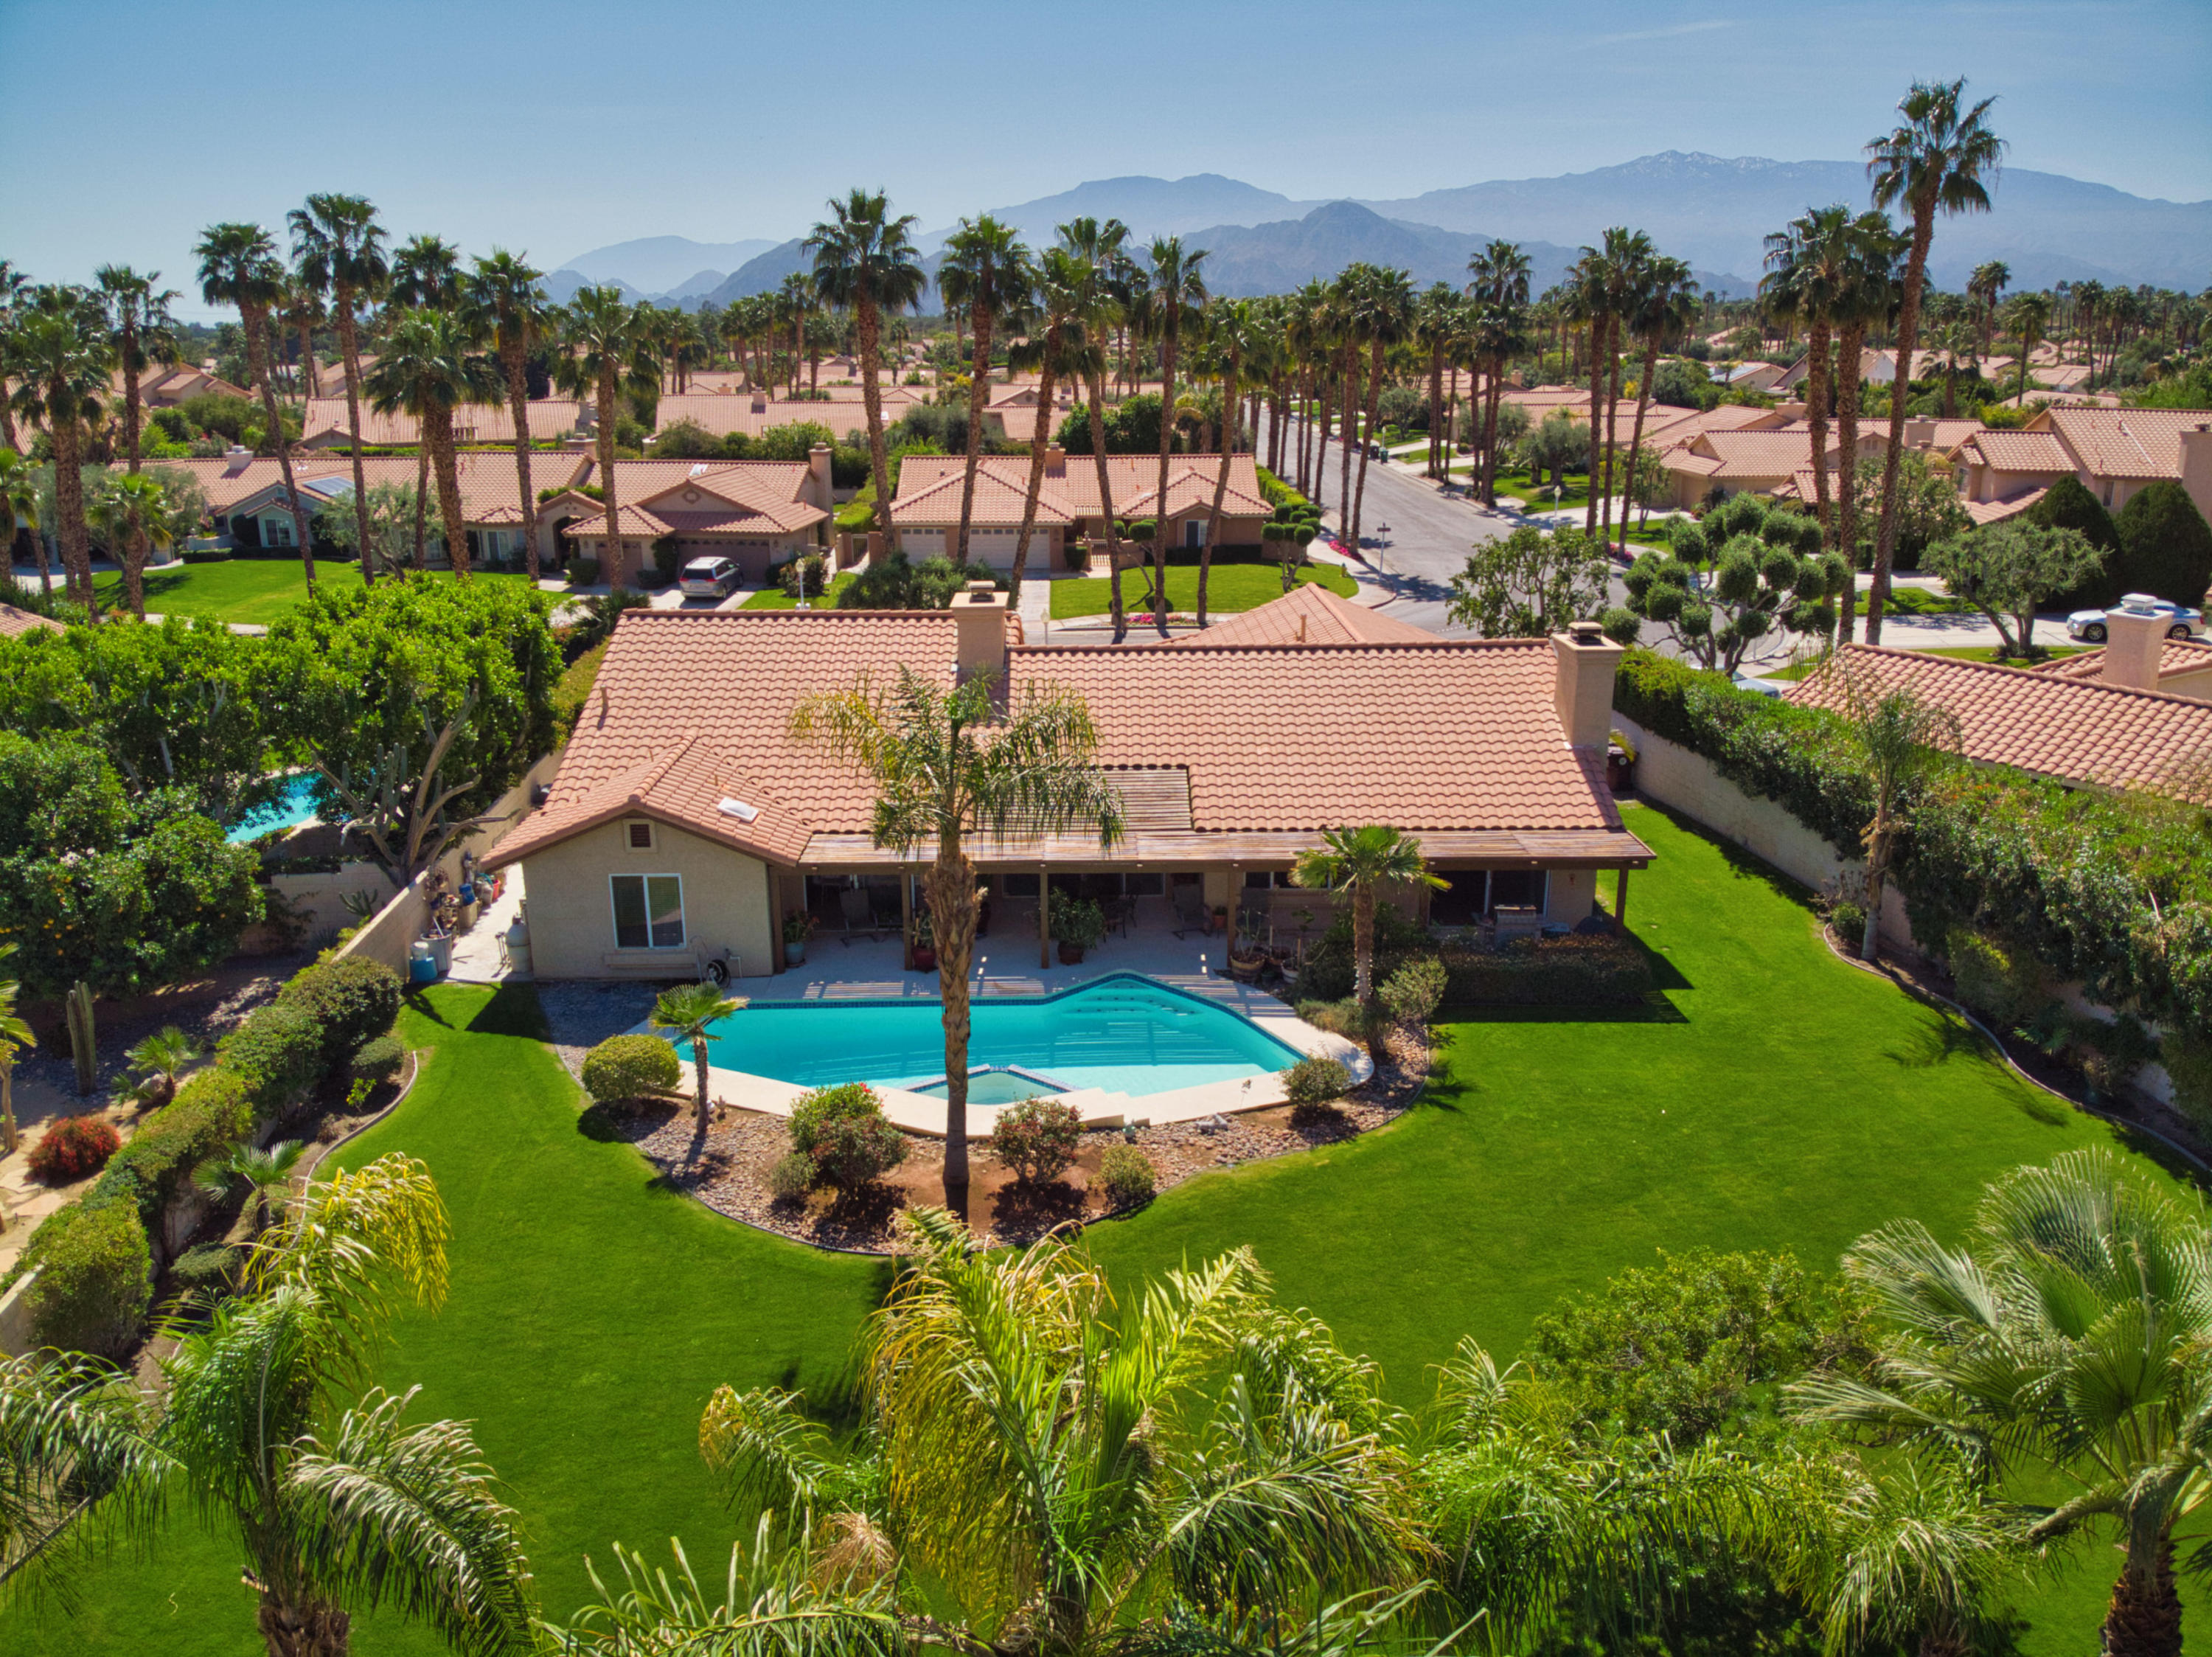 76922 Tricia Lane, Palm Desert, California 92211, 4 Bedrooms Bedrooms, ,3 BathroomsBathrooms,Residential,For Sale,76922 Tricia Lane,219040289